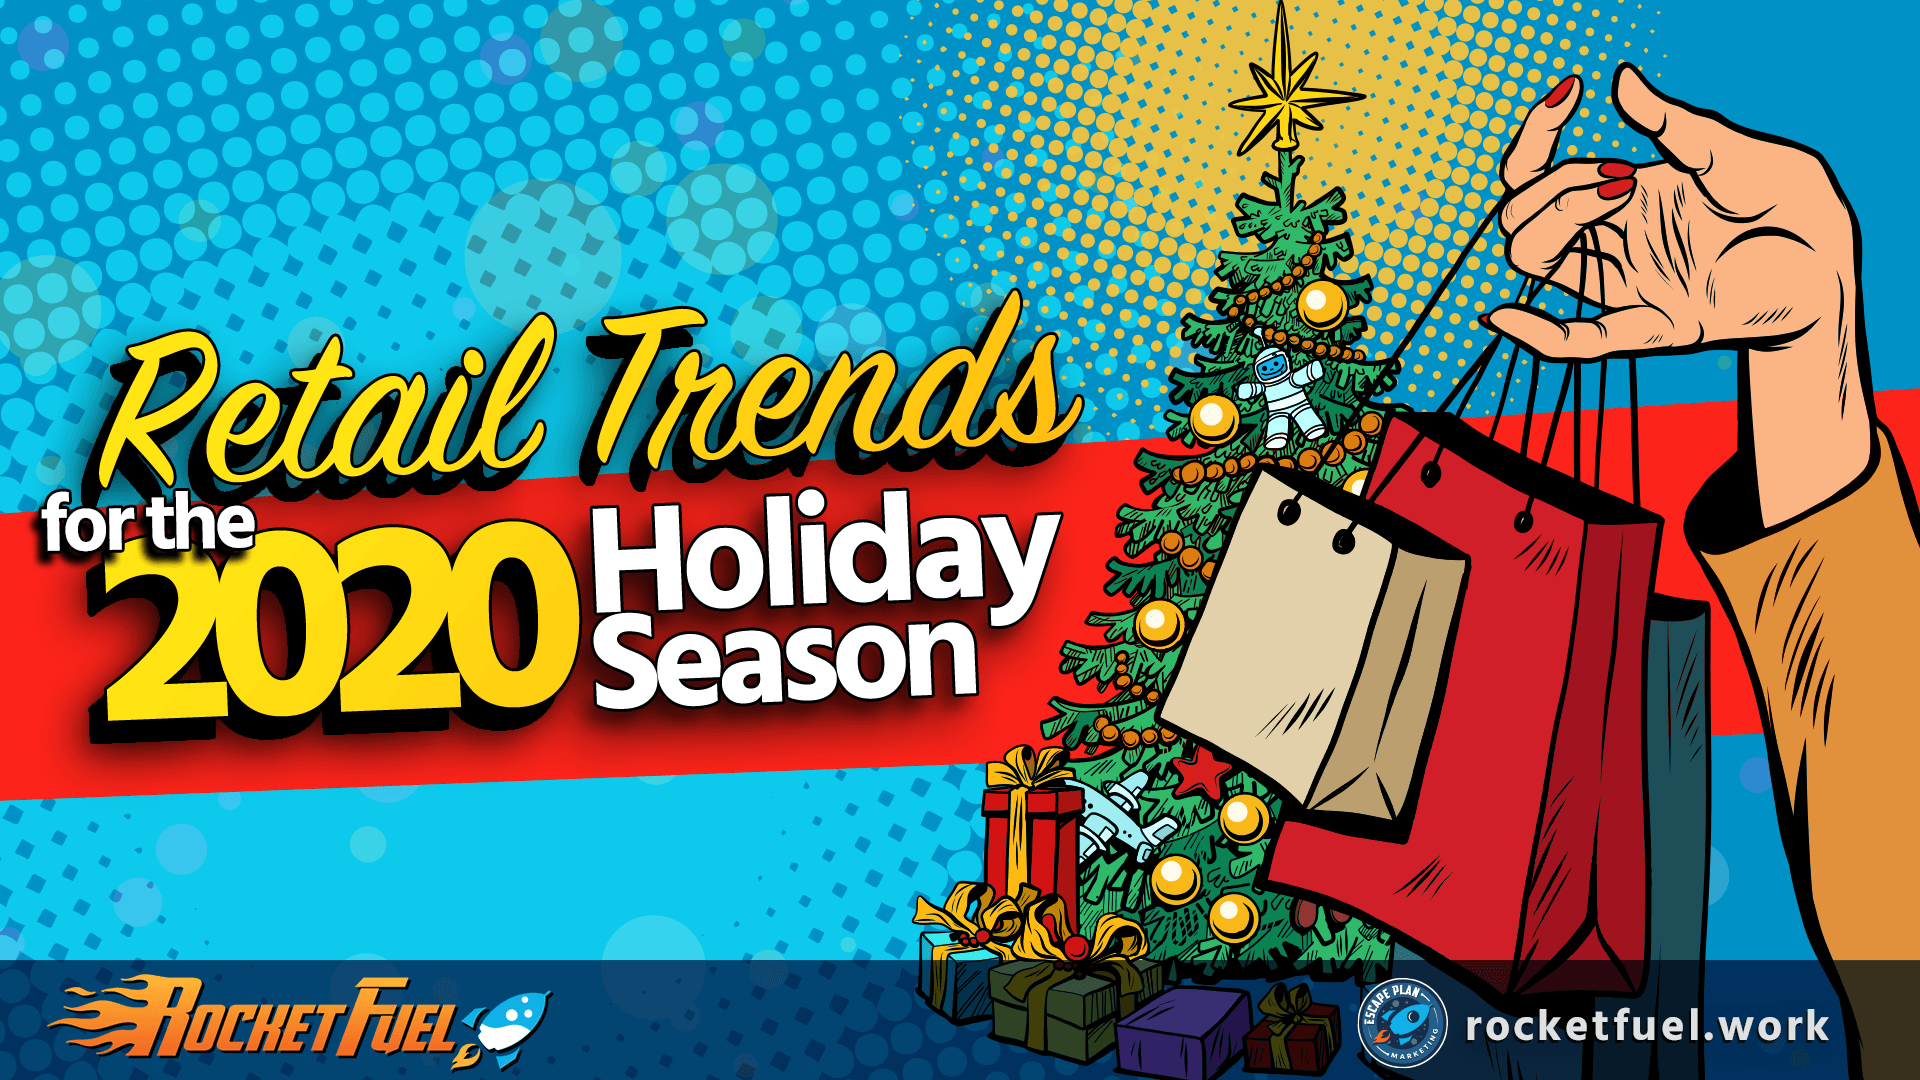 Retail Trends for the 2020 Holiday Season